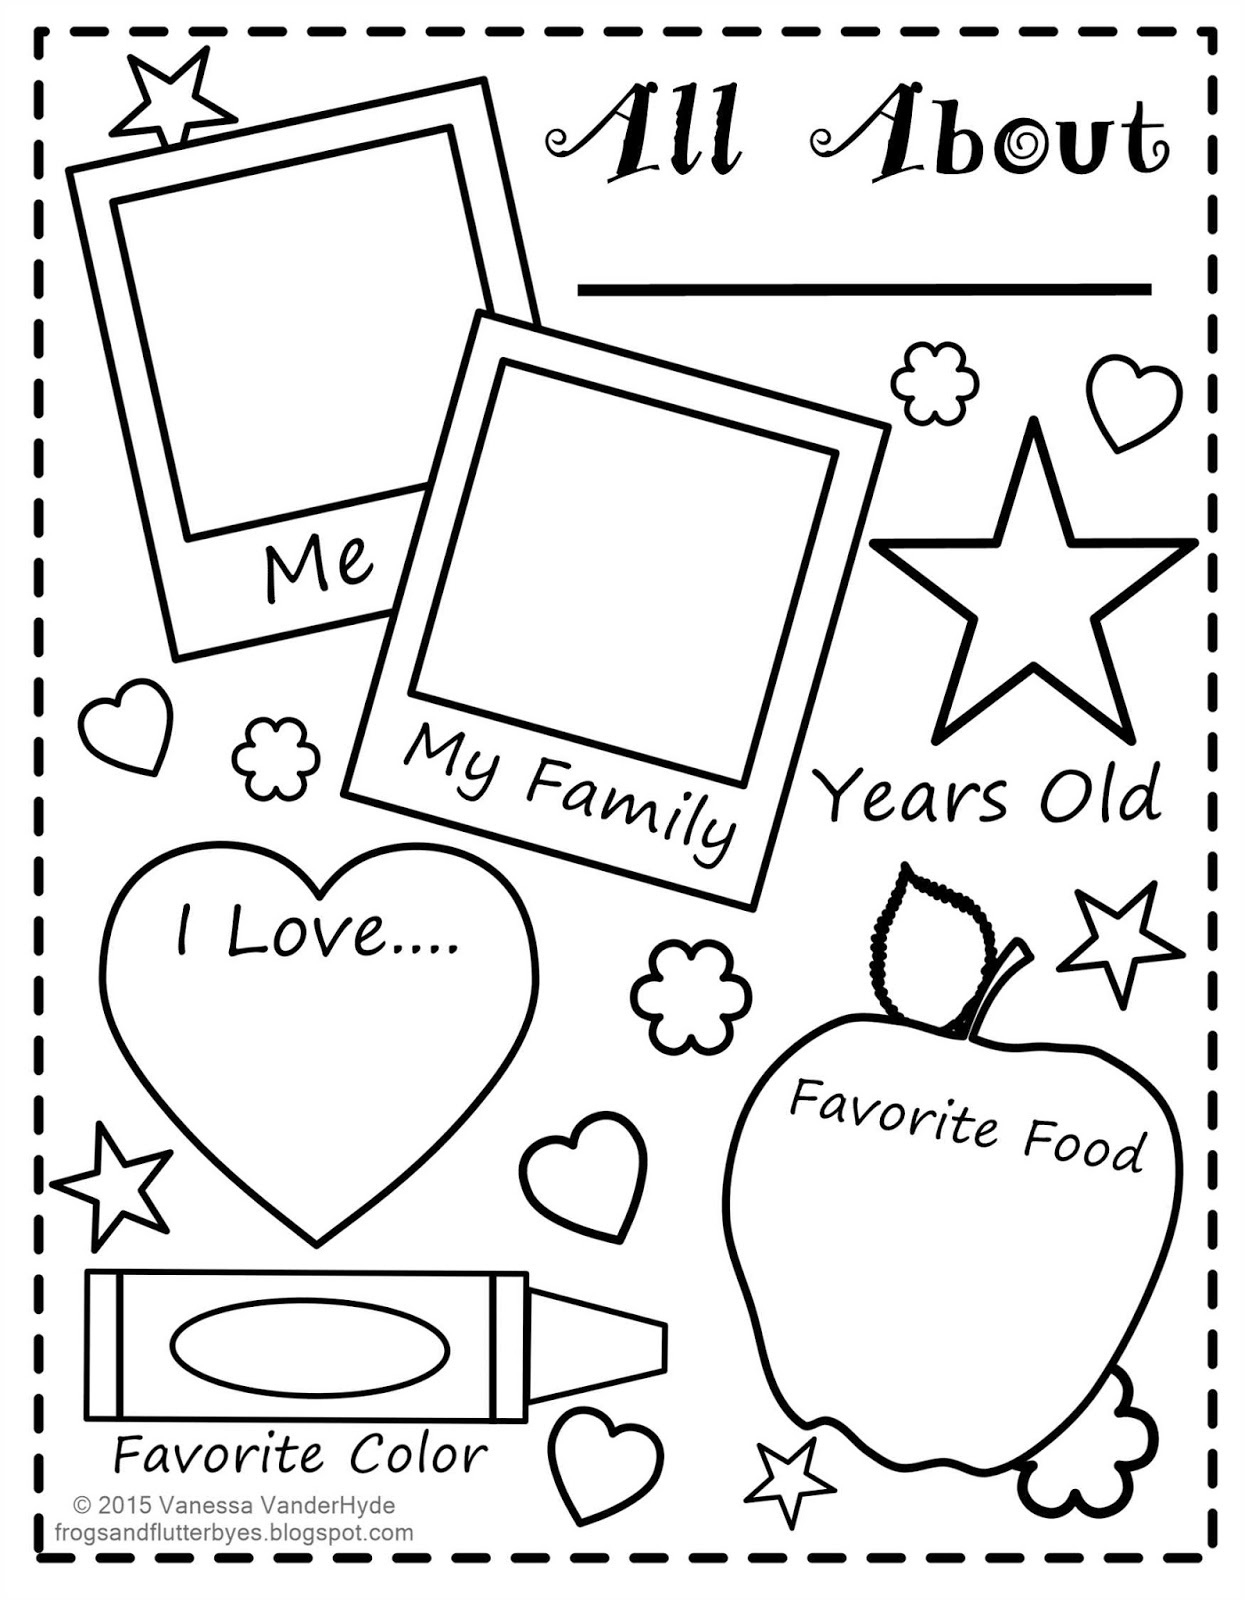 All About Me Worksheet All About Me Free Printable Worksheets - Free | All About Me Printable Worksheets